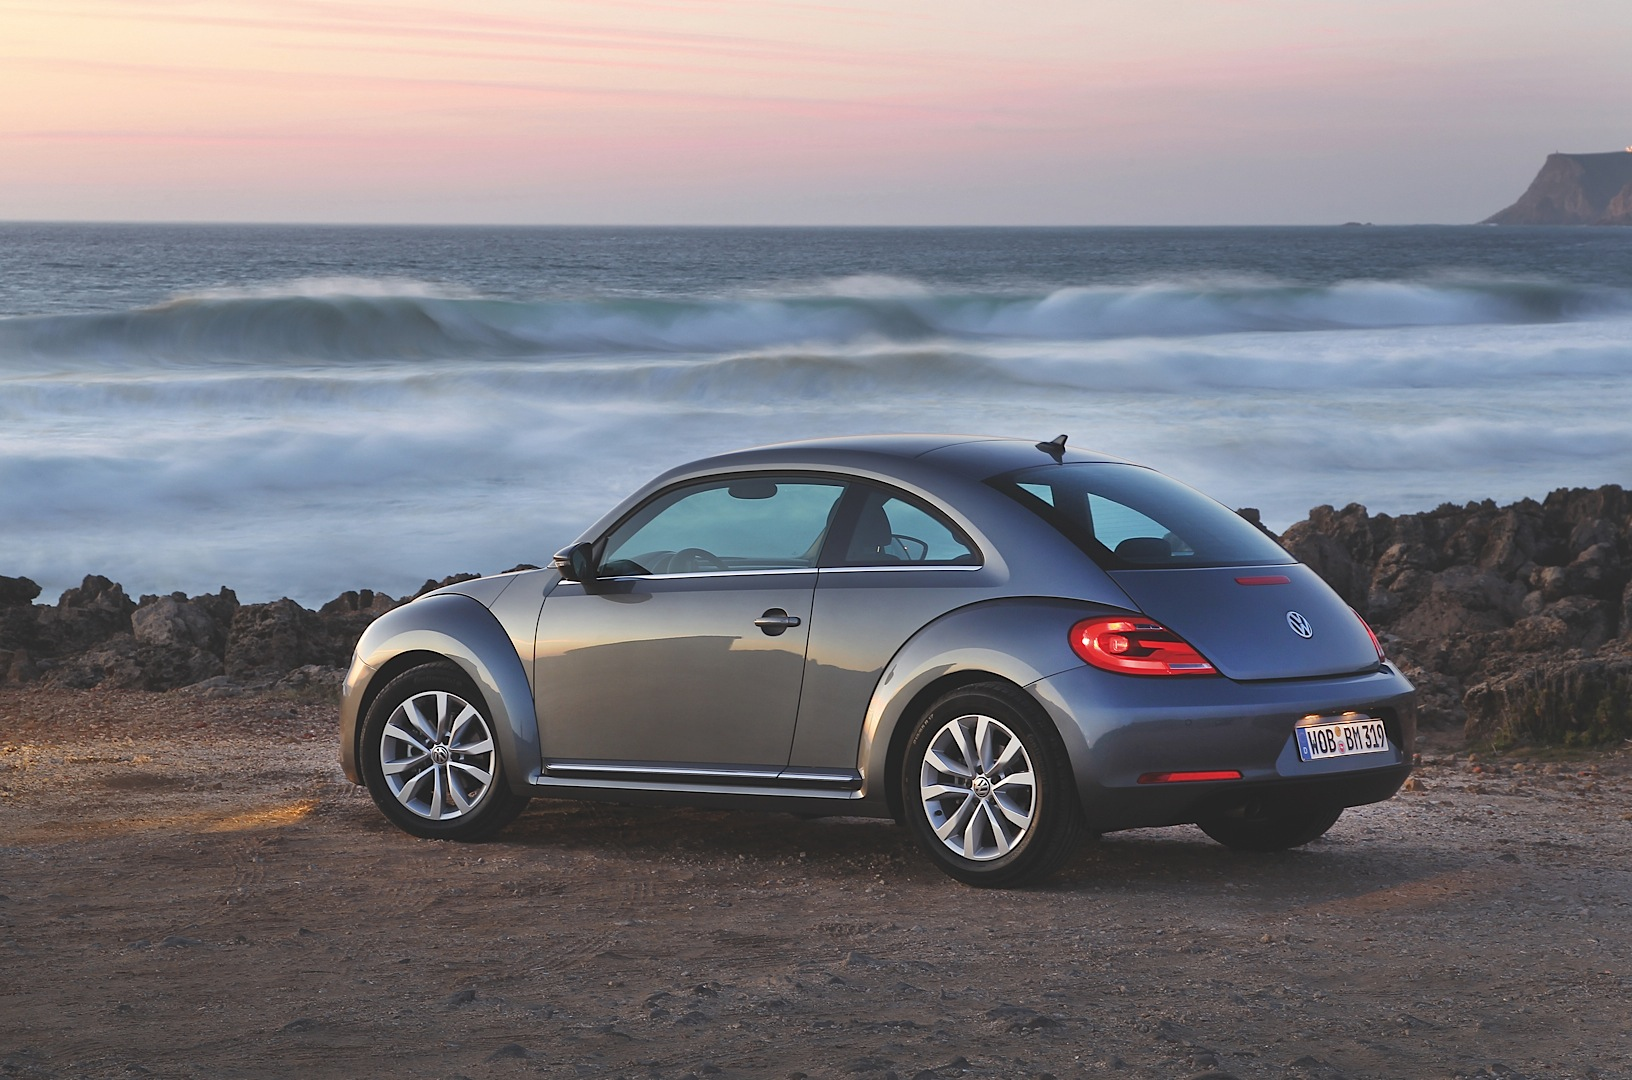 Scoop: 2015 Volkswagen Beetle TSI and TDI Engines Quietly Changed (Euro 6) - autoevolution